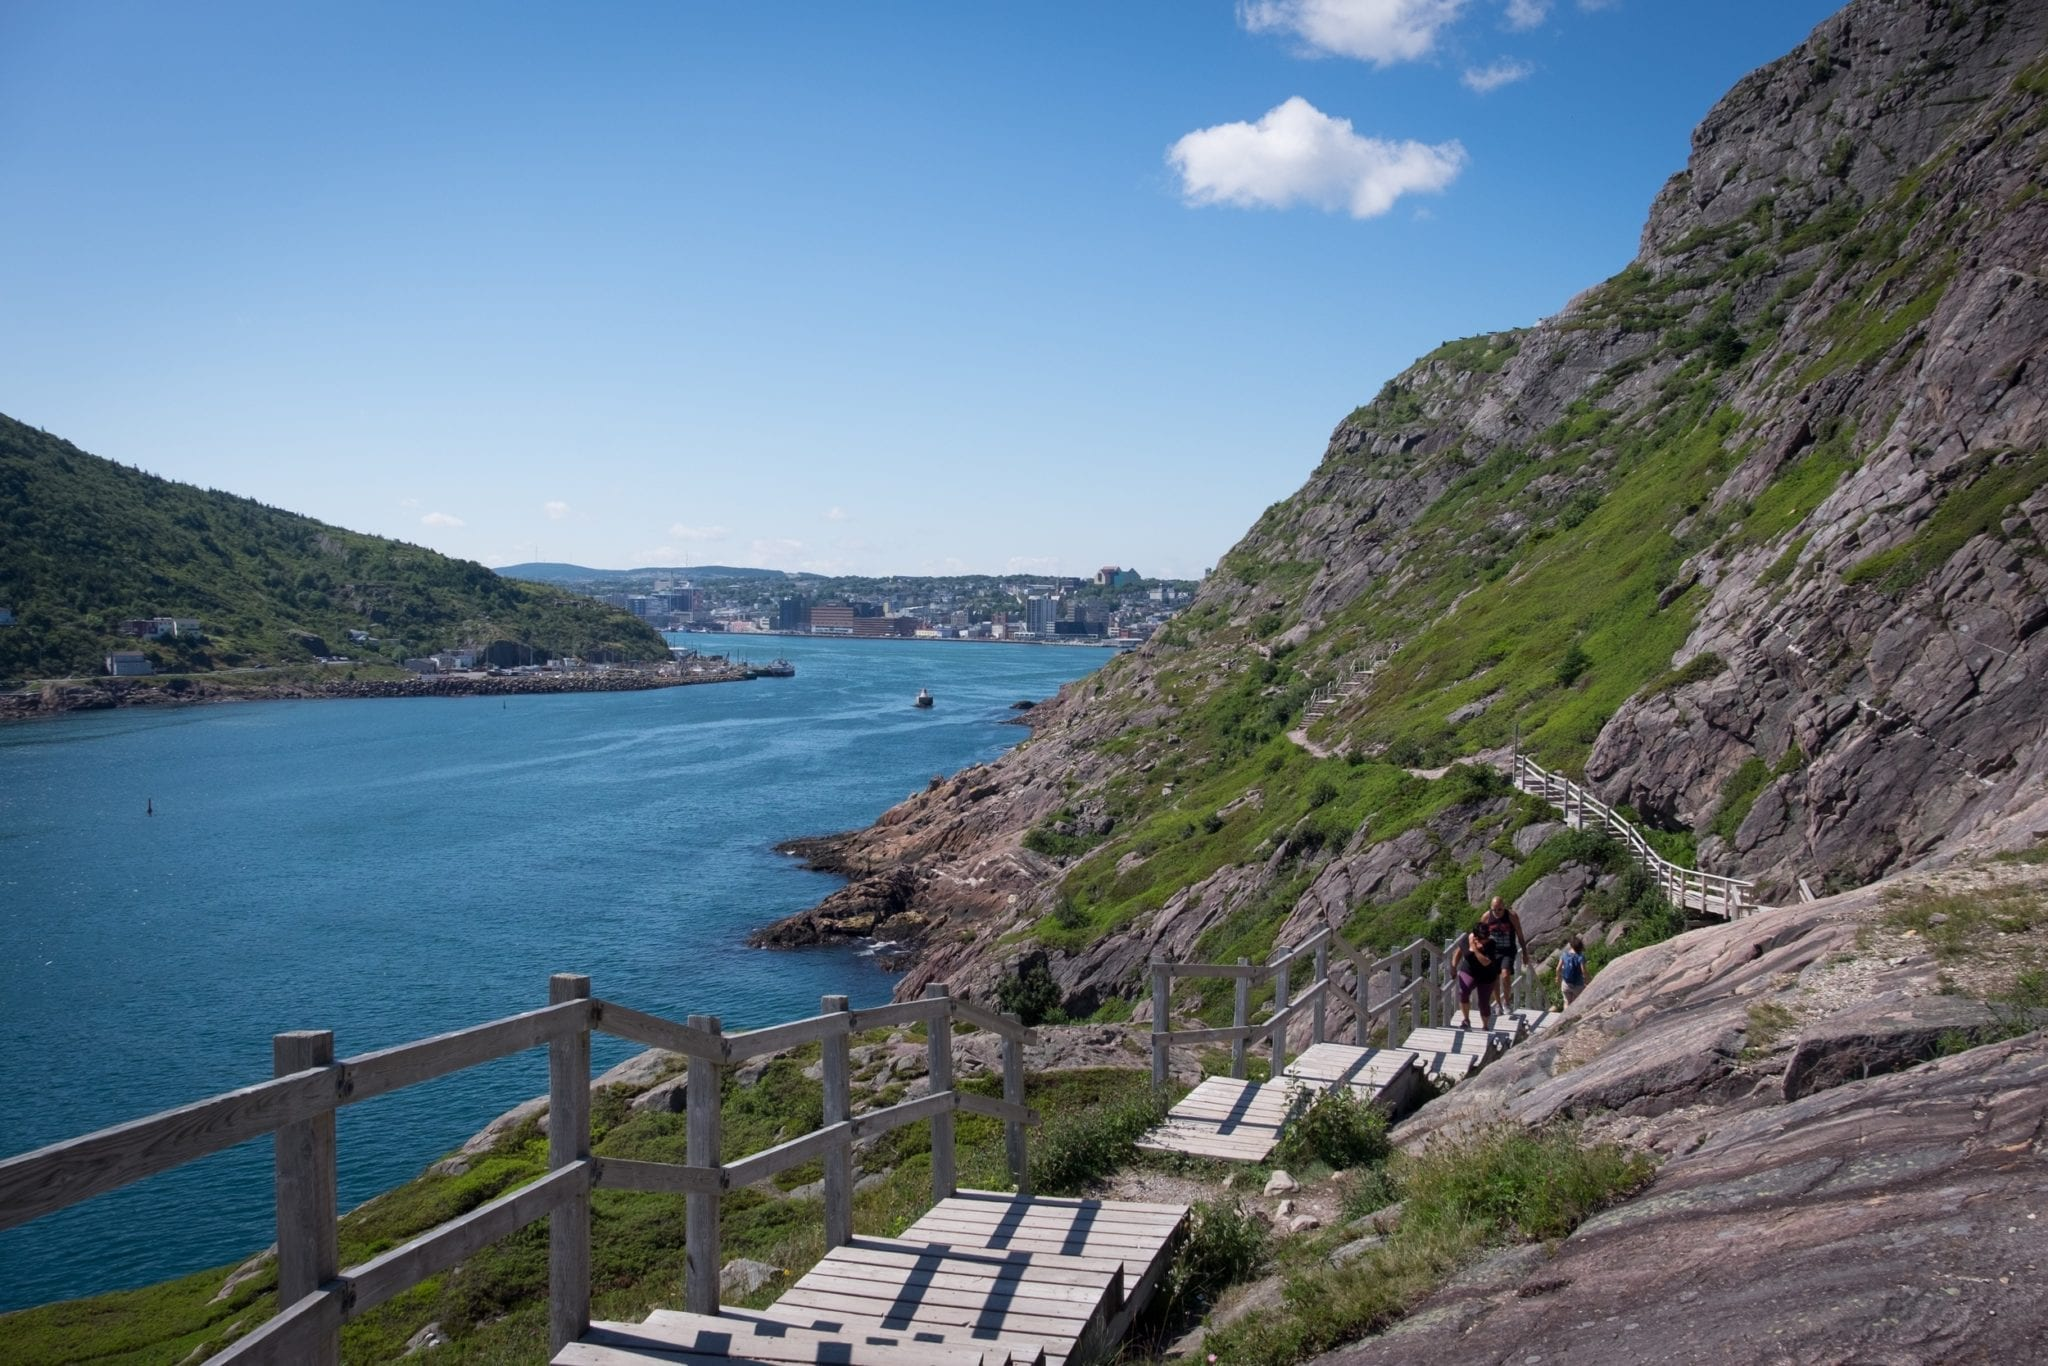 A hiking trail with wooden stairs leading up rocky cliffs in front of the bright blue bay in St. John's, Newfoundland.